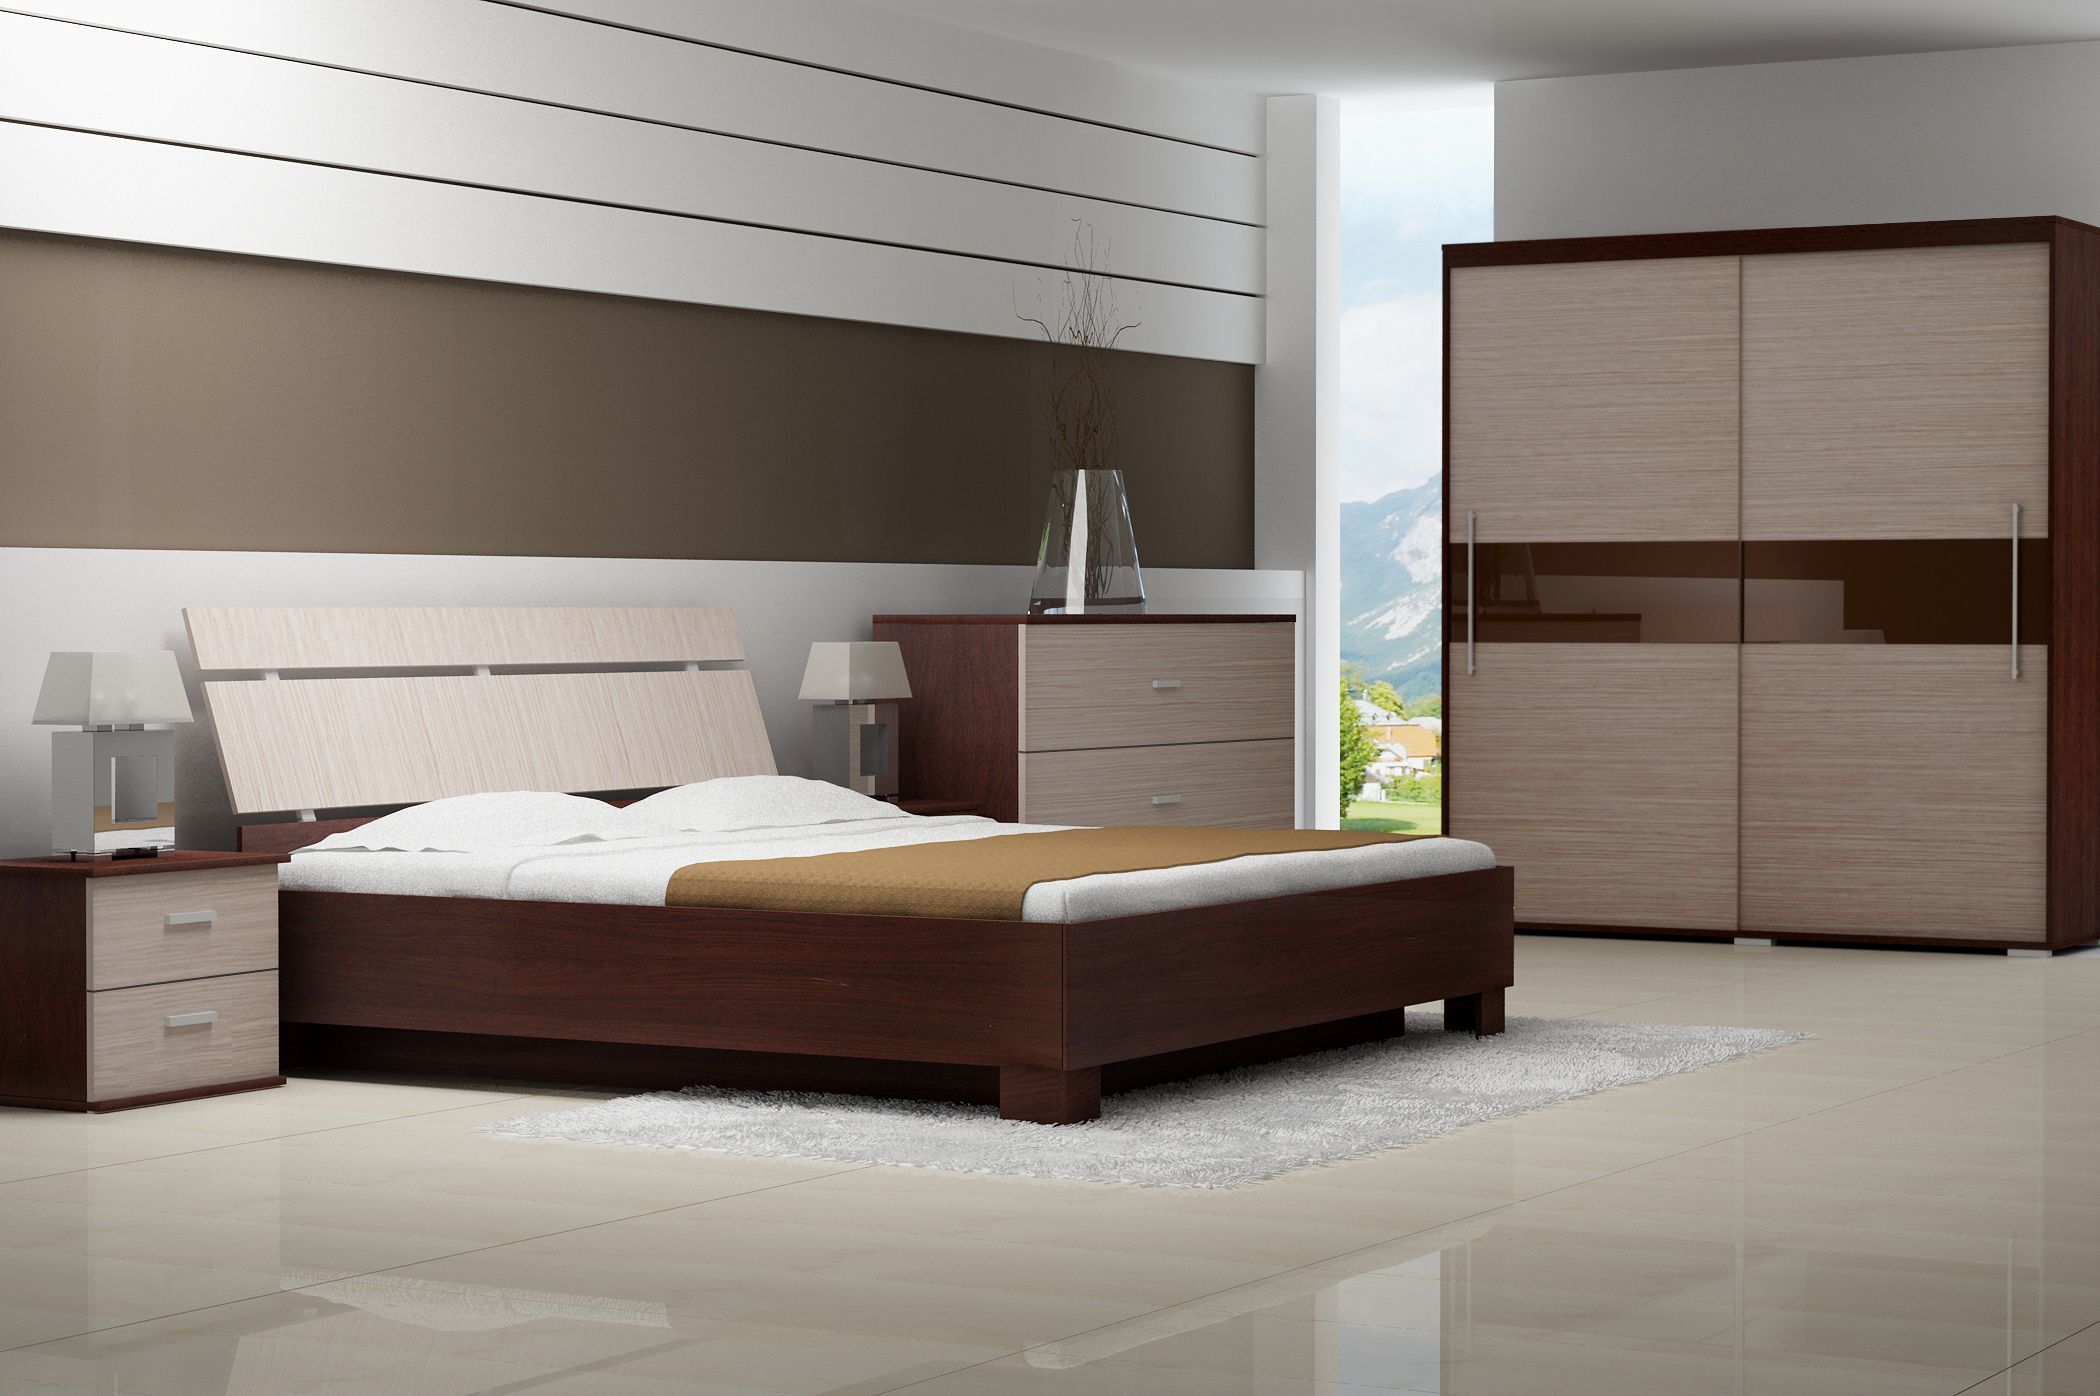 Bedroom Furniture Sets 2013 cheap modern bedroom furniture | house | pinterest | bedrooms, diy